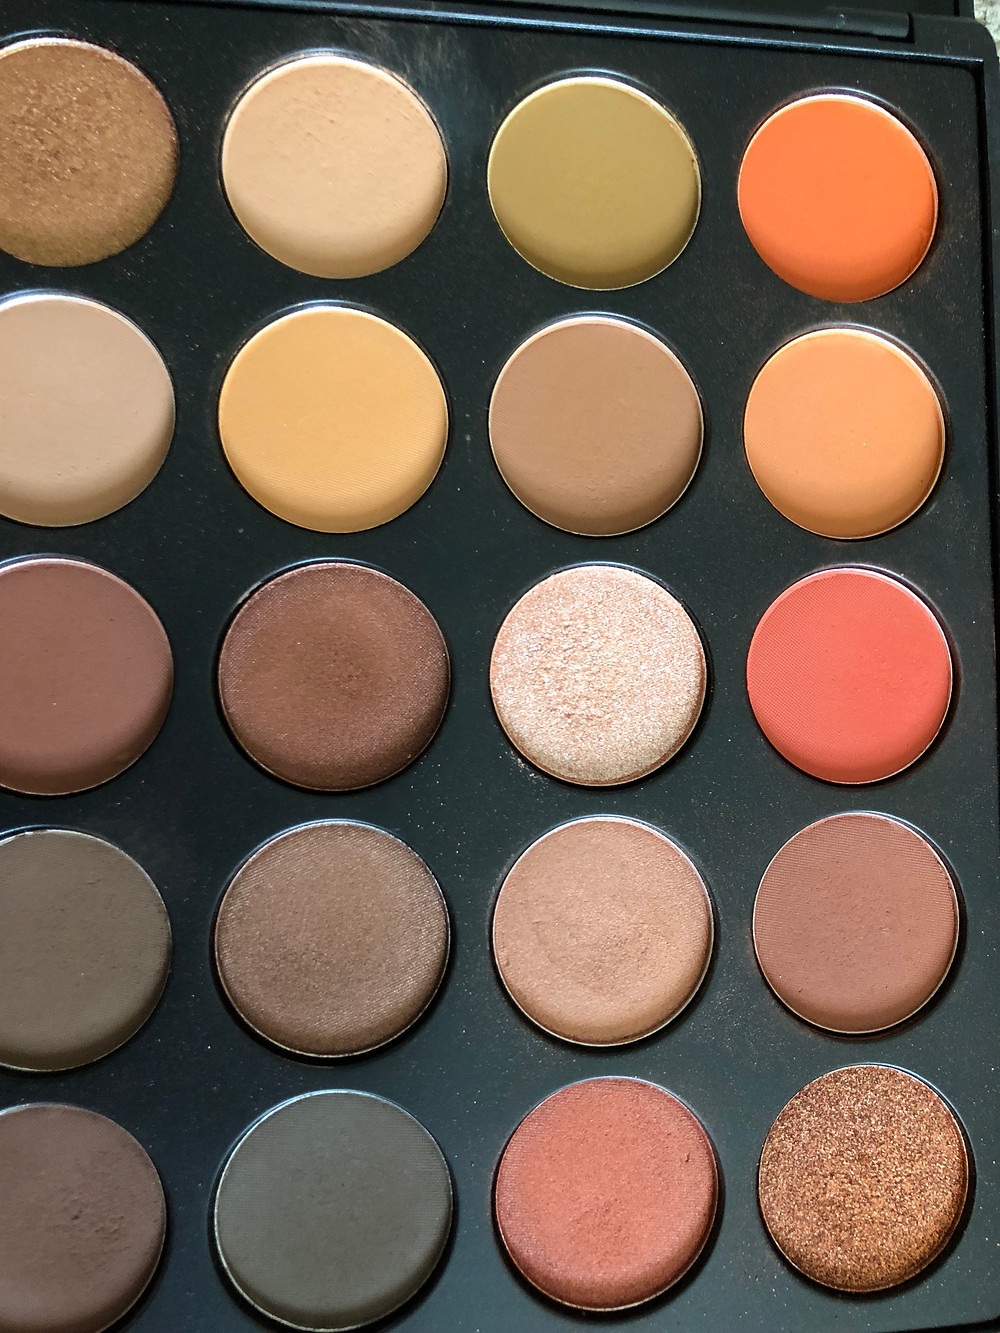 morphe 35O, eyeshadow colors